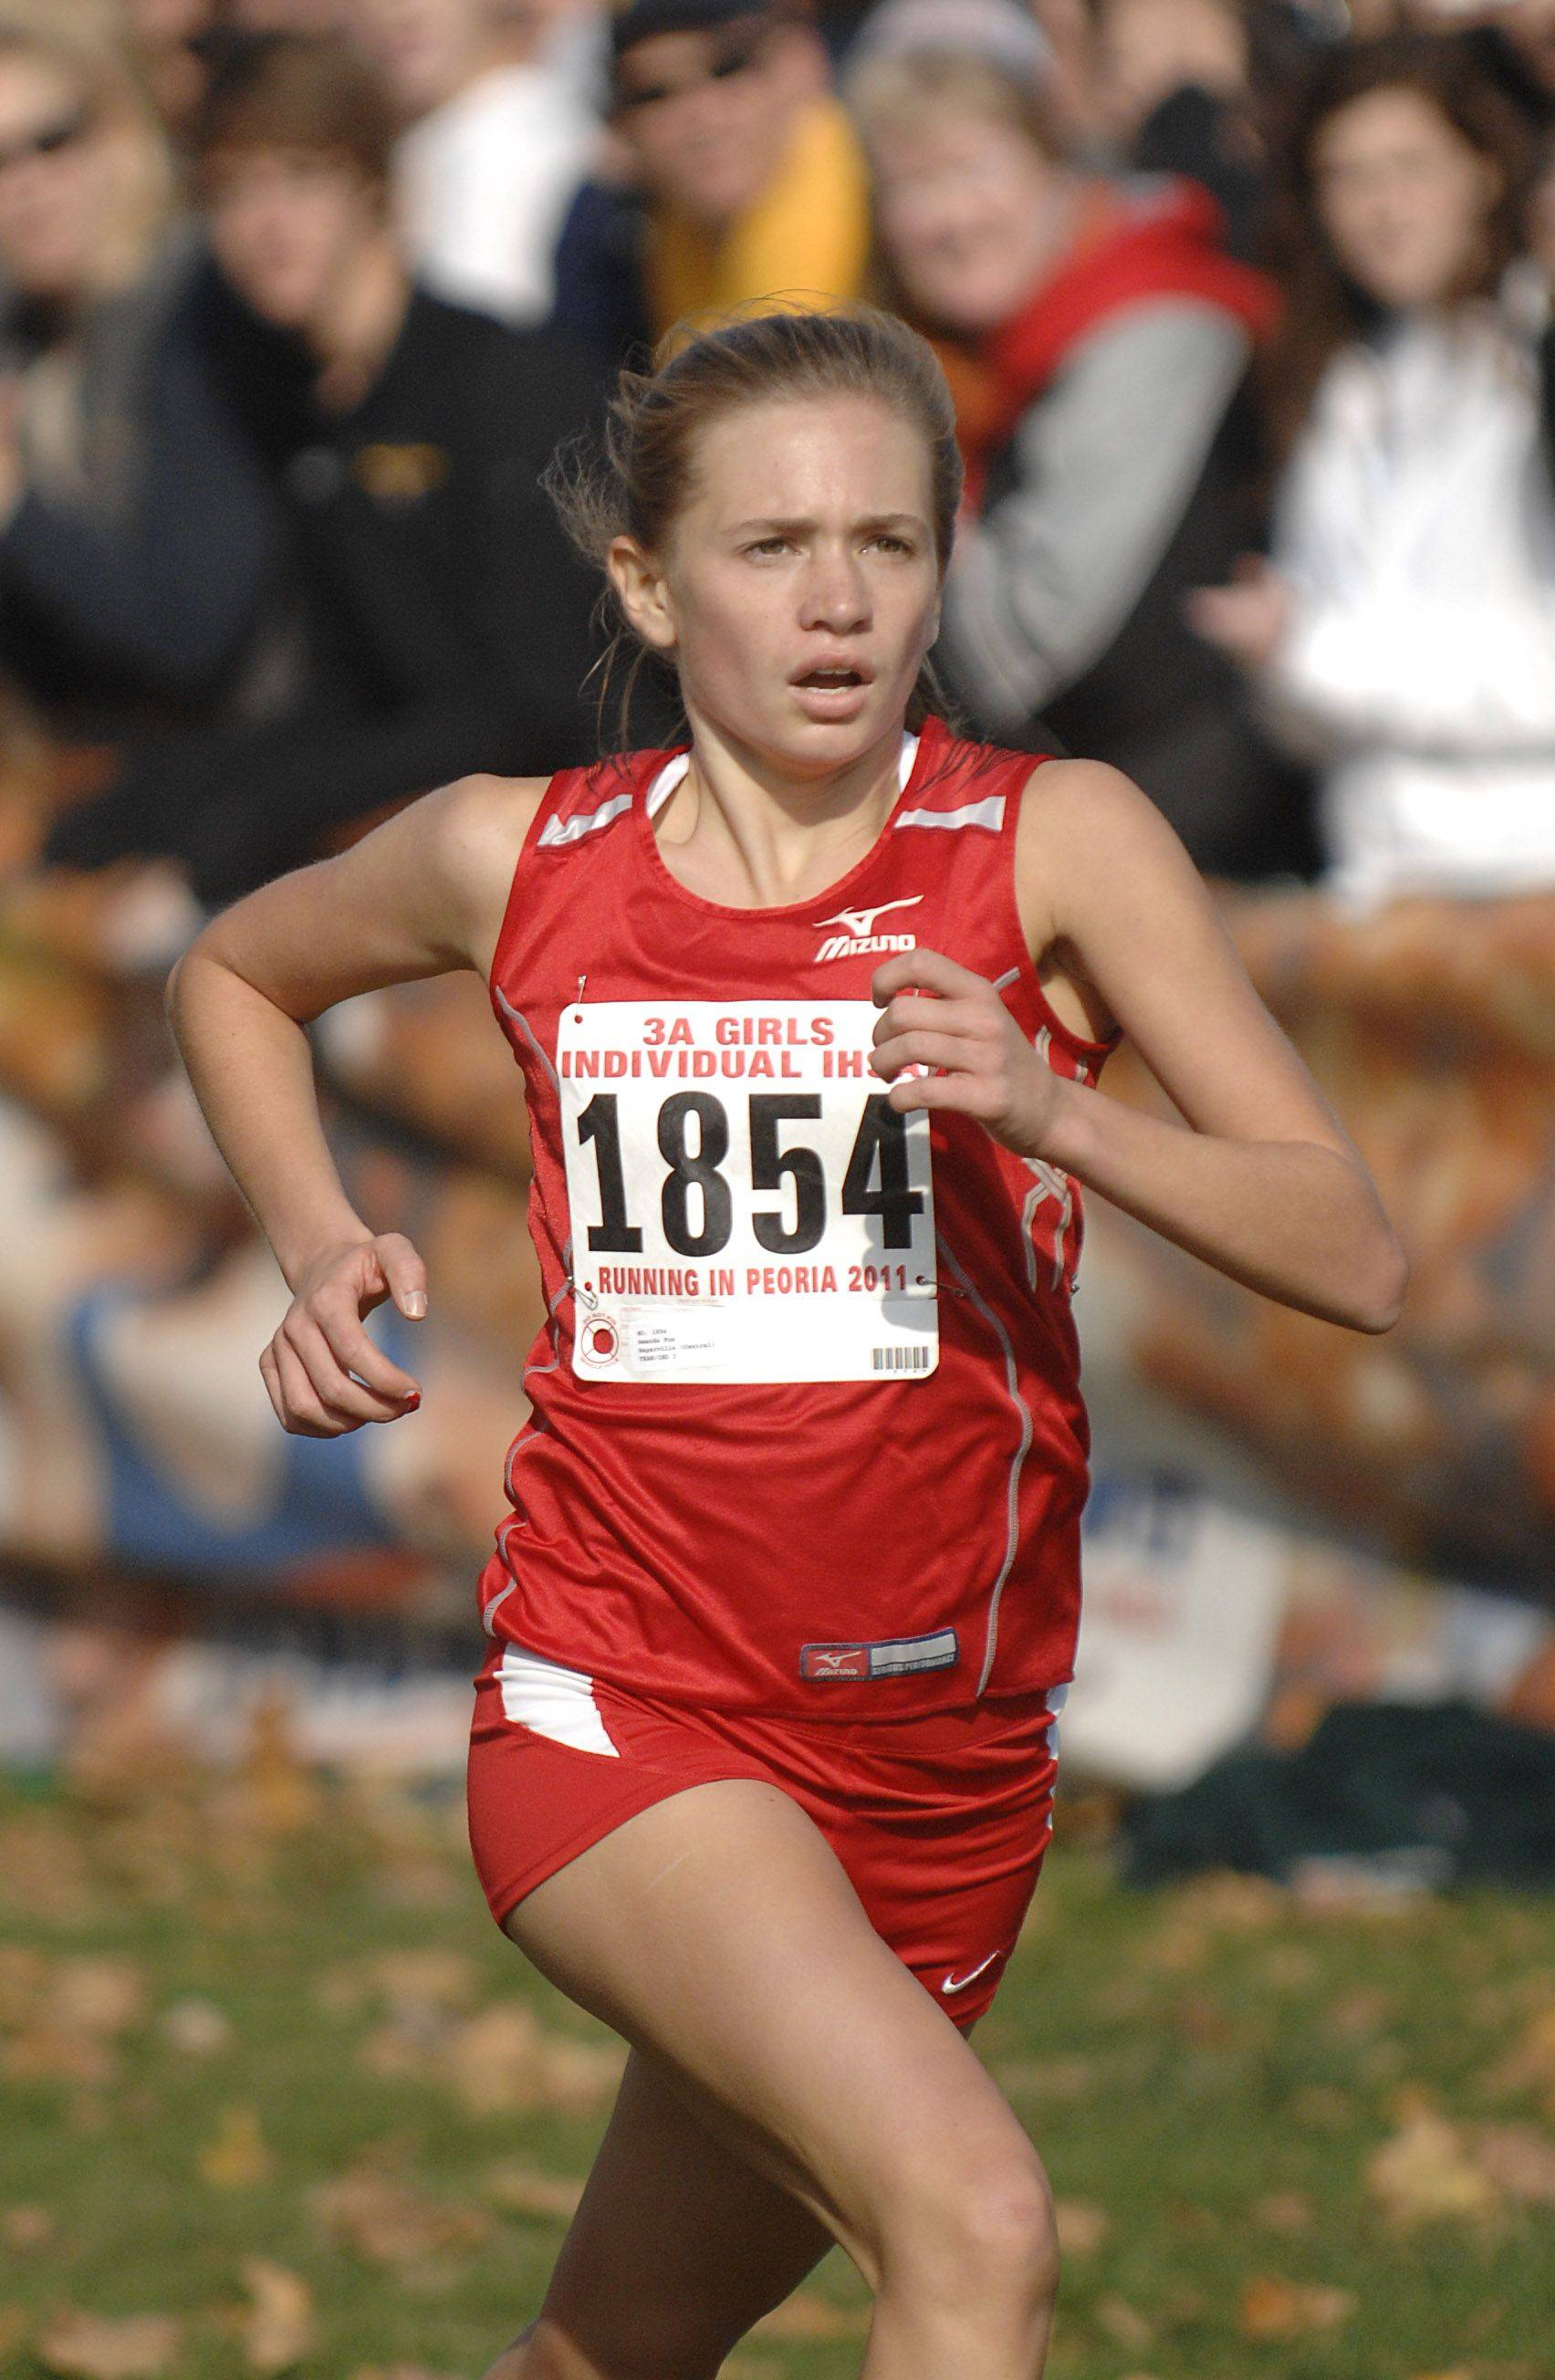 Naperville Central's Amanda Fox takes first place in the 3A state cross country final in Peoria on Saturday, November 5 with a time of 16:24.